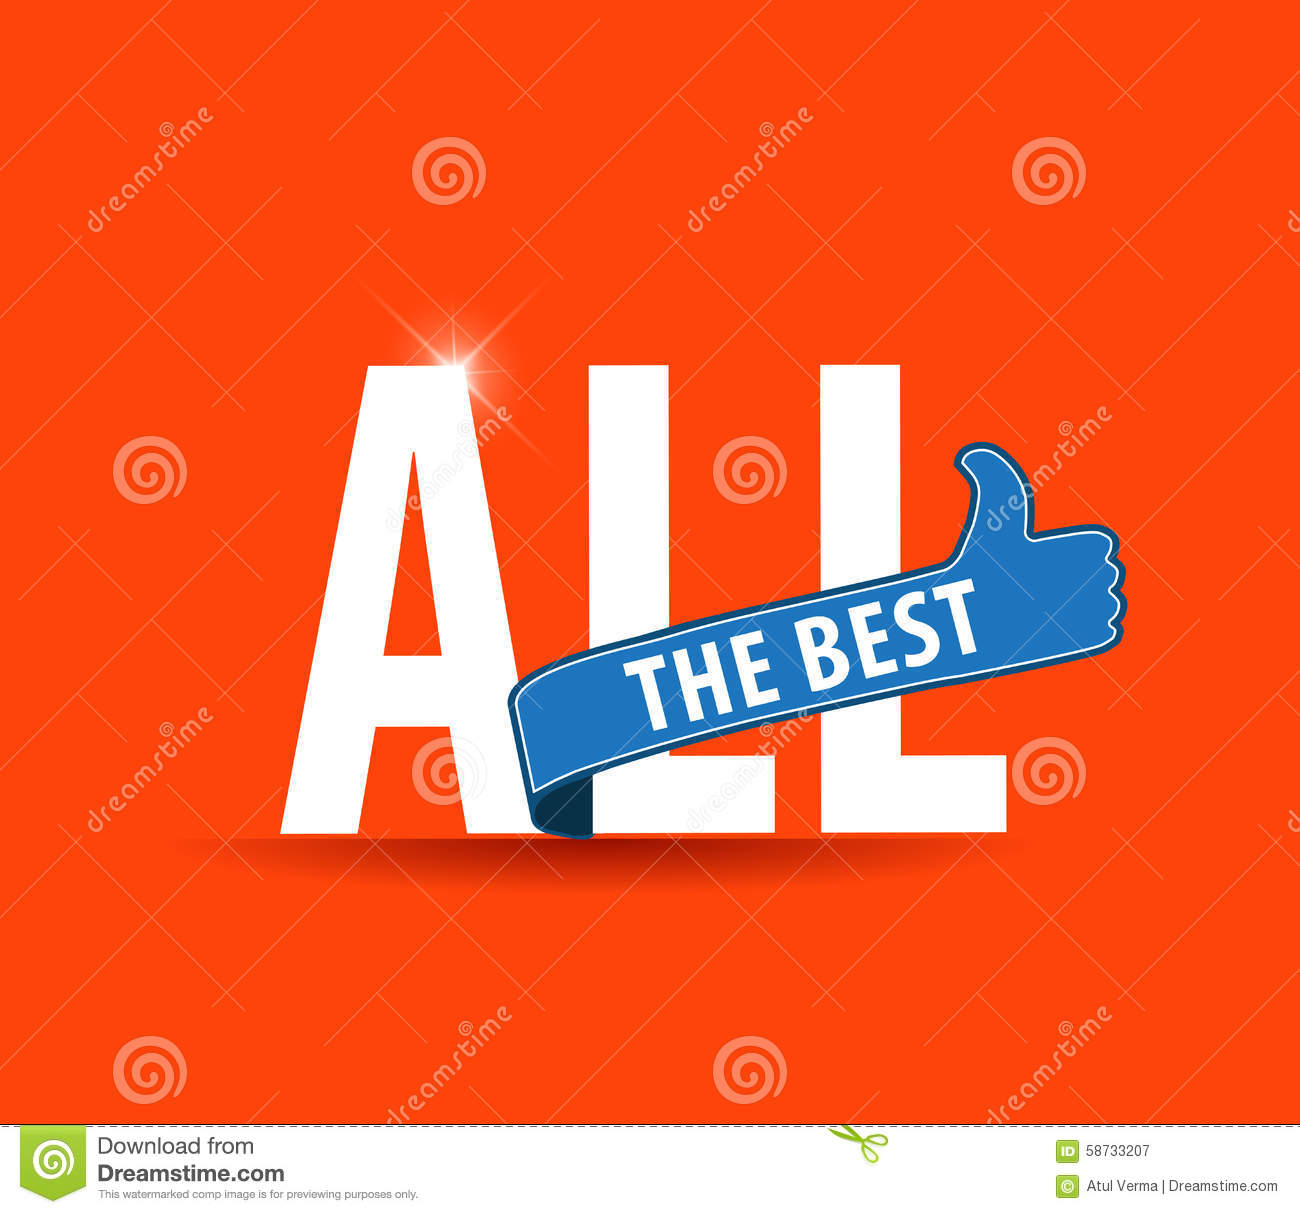 All The Best Motivational Graphic For Best Wishes Good Luck Stock